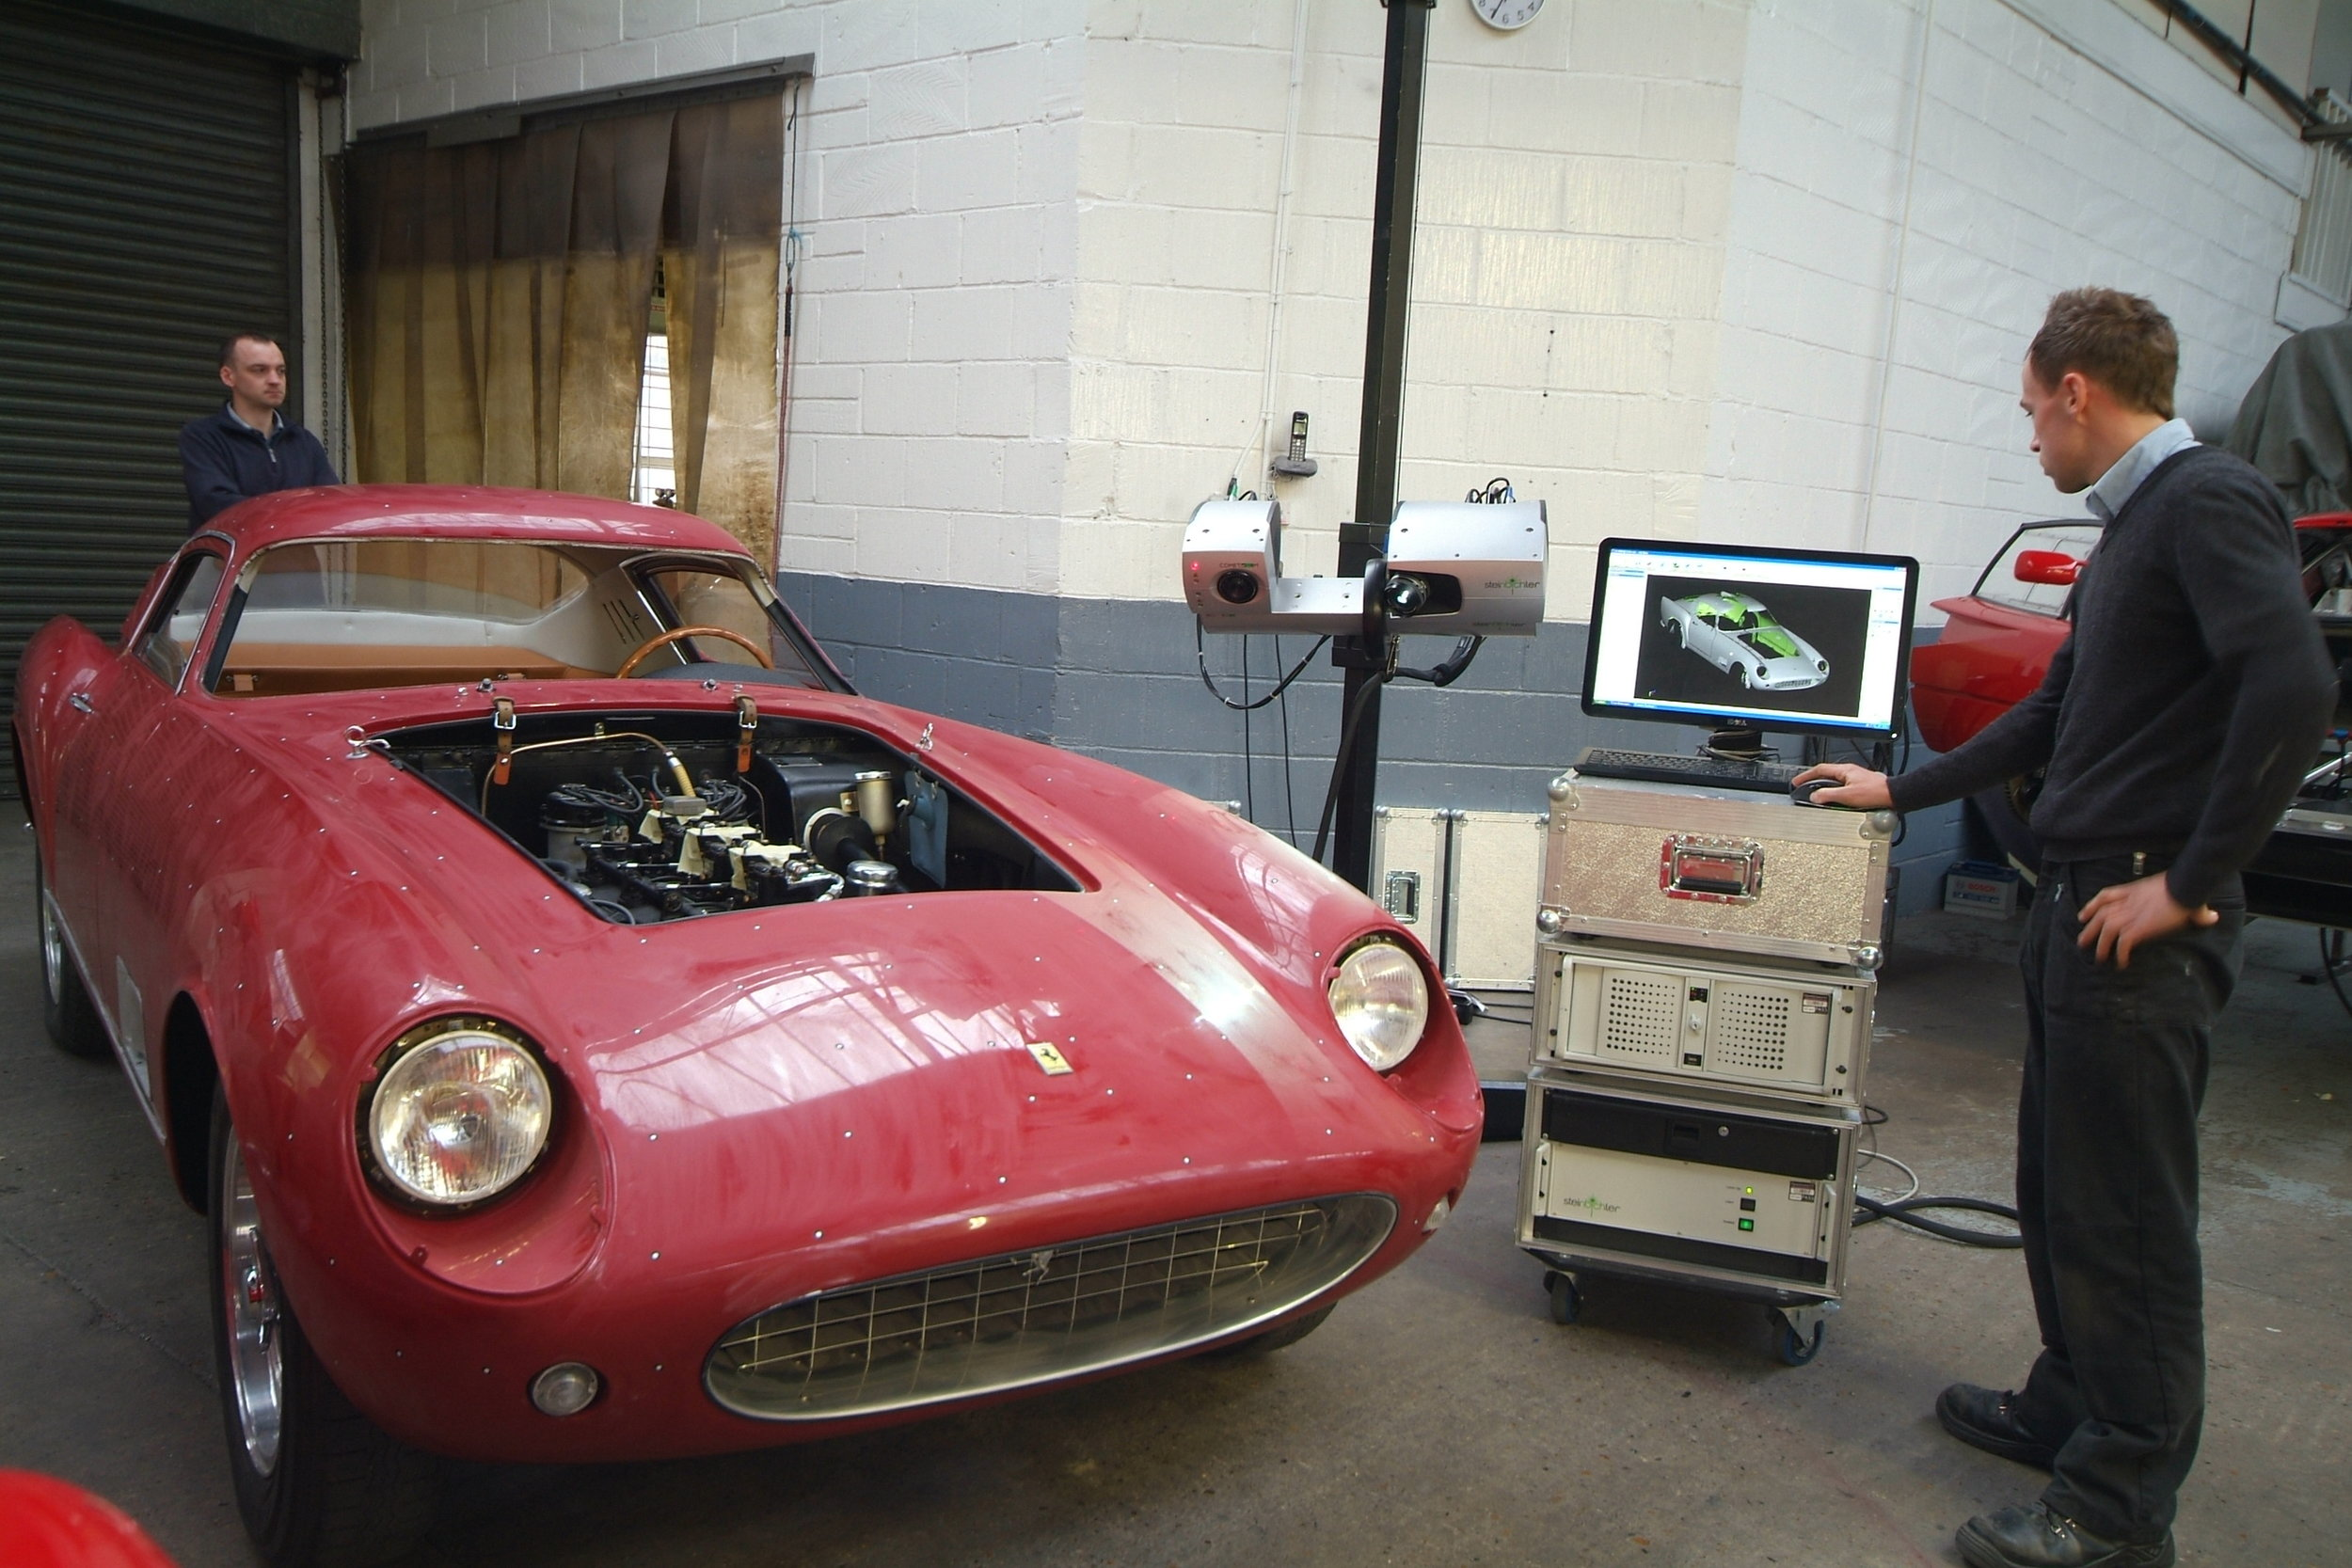 The bodywork of a Ferrari 250 TDF being completely scanned in 3D to millimetre precision, so that a wooden buck can be manufactured from the results. Utilising the very latest technology, so that we can produce the most accurate panels in the traditional way.